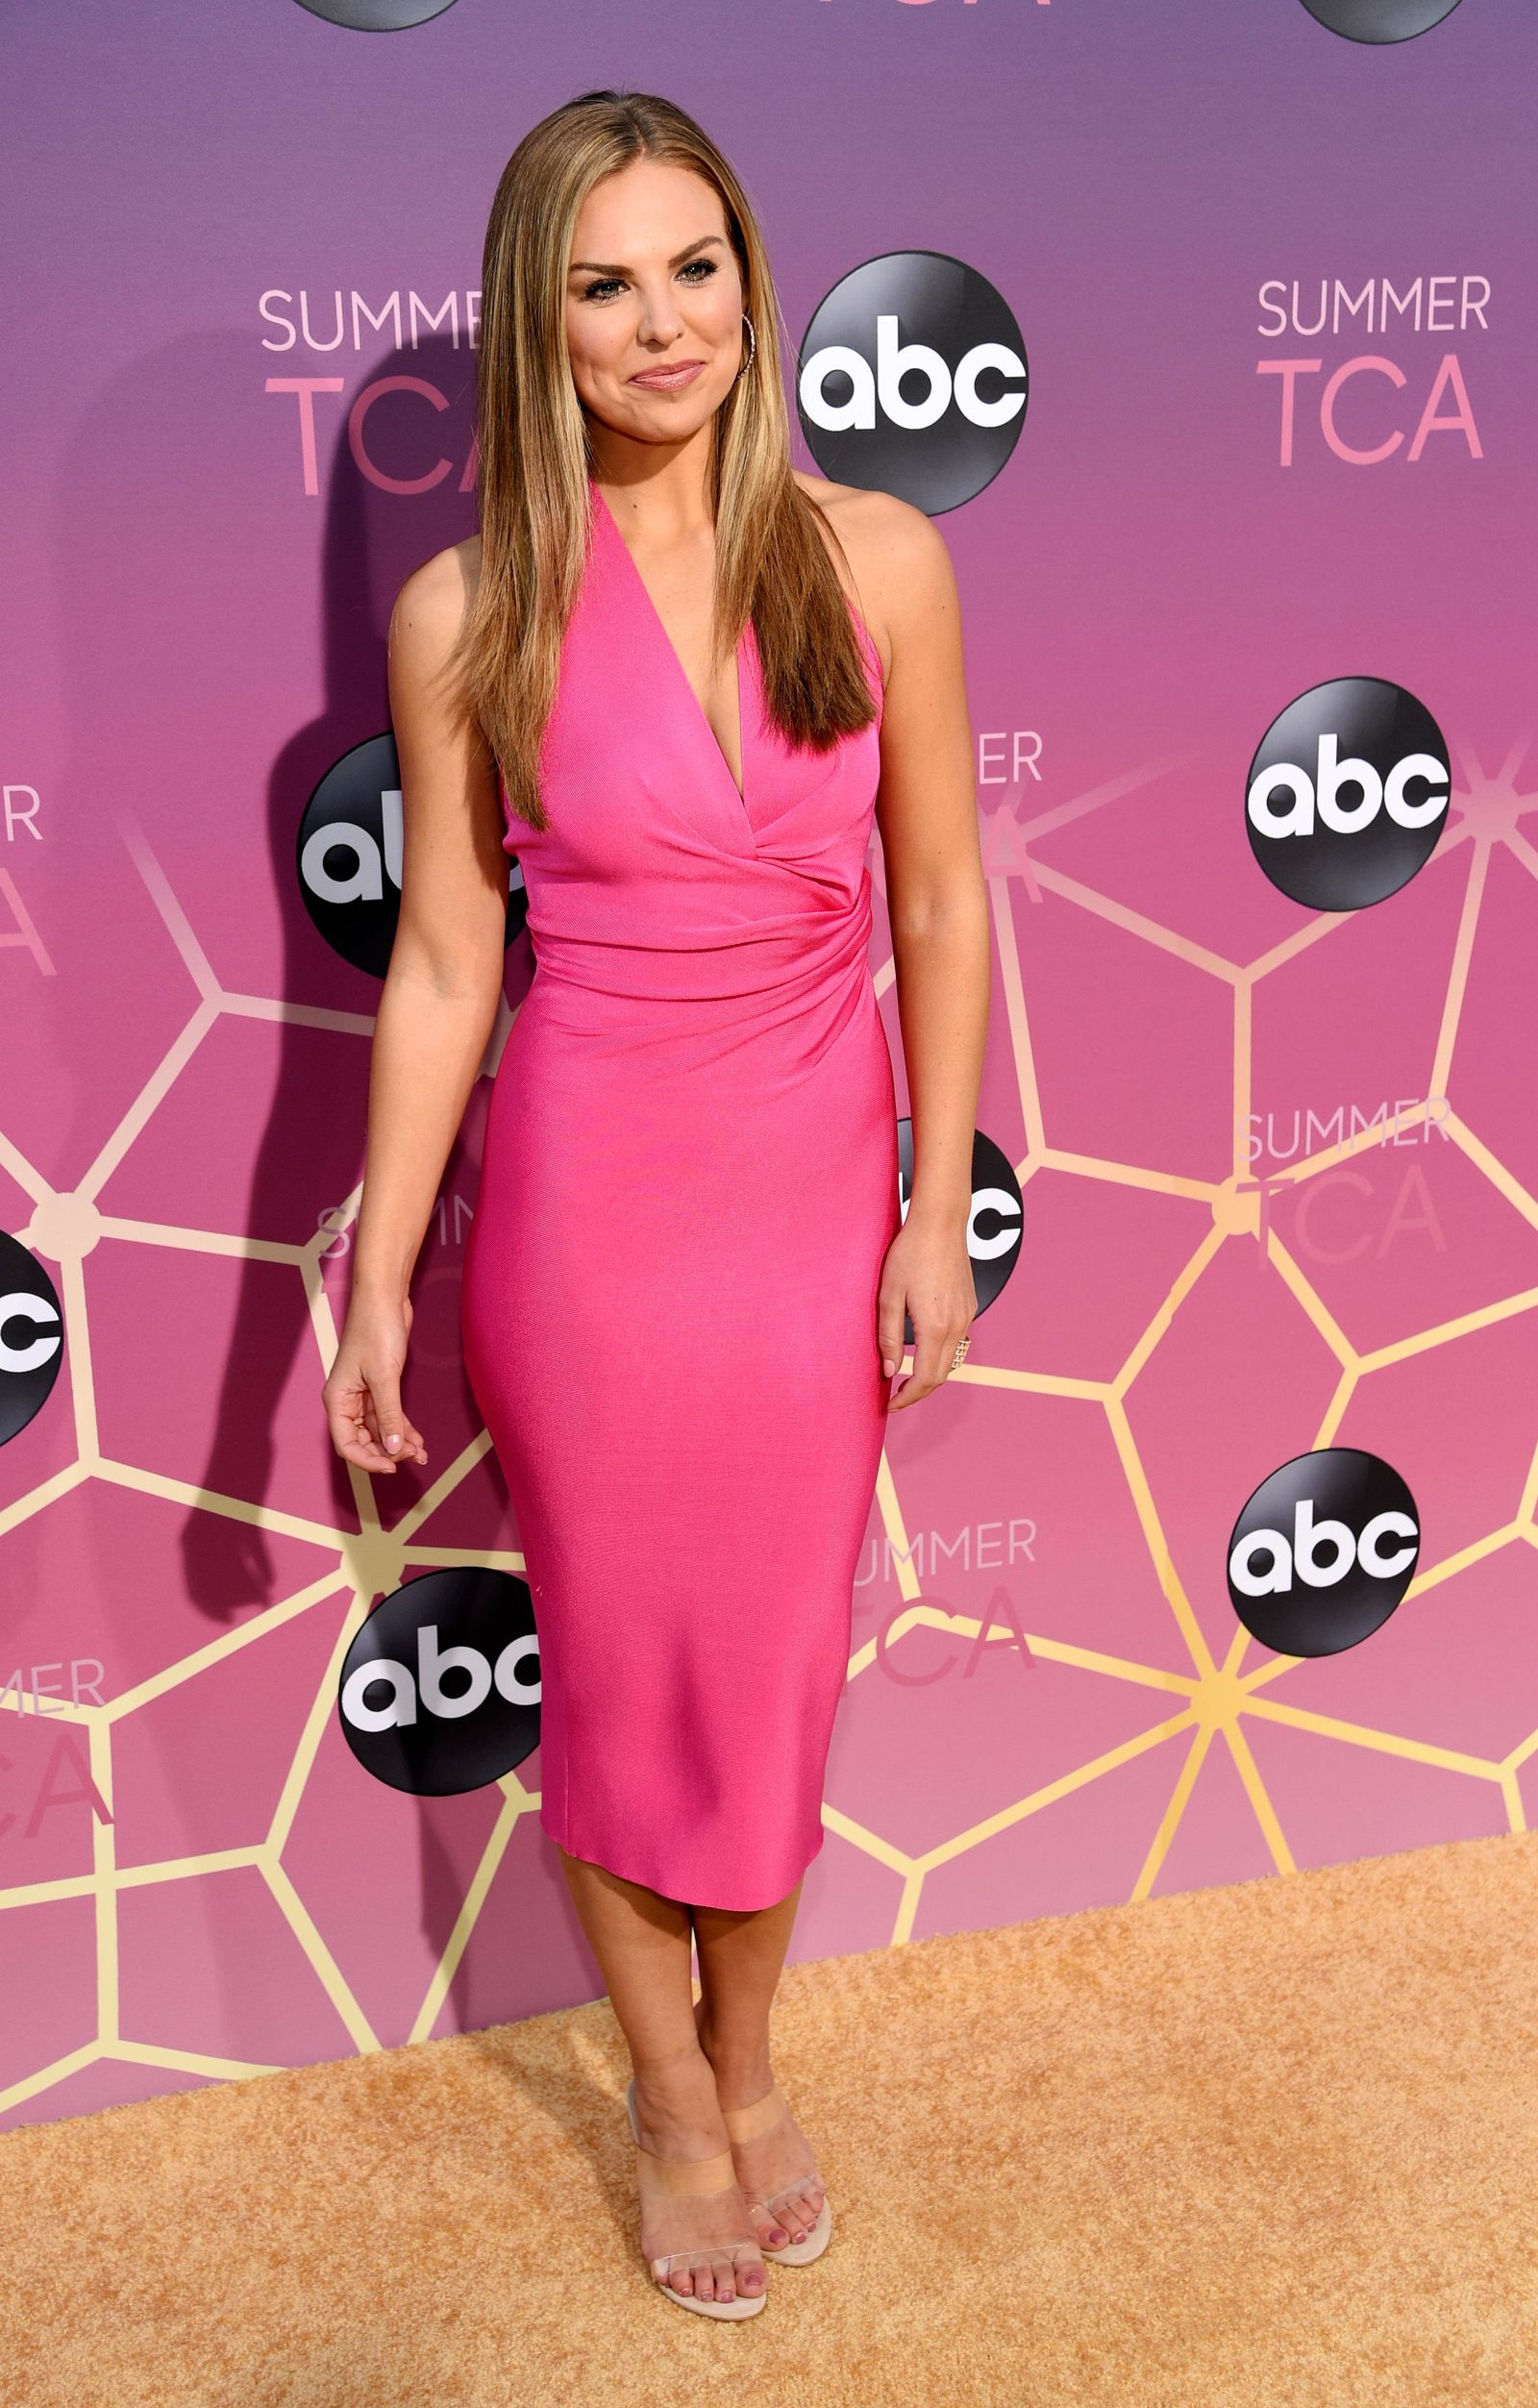 "FILE - In this Monday, Aug. 5, 2019 file photo, Hannah Brown poses at the ABC Television Critics Association Summer Press Tour All-Star Party at Soho House, in West Hollywood, Calif. Brown of ""The Bachelorette,'' Christie Brinkley, and former White House press secretary Sean Spicer are among the contestants on the next season of ''Dancing with the Stars.'' ABC announced the celebrity lineup Wednesday, Aug. 21, 2019, on ""Good Morning America.'' (Photo by Chris Pizzello/Invision/AP, File)"